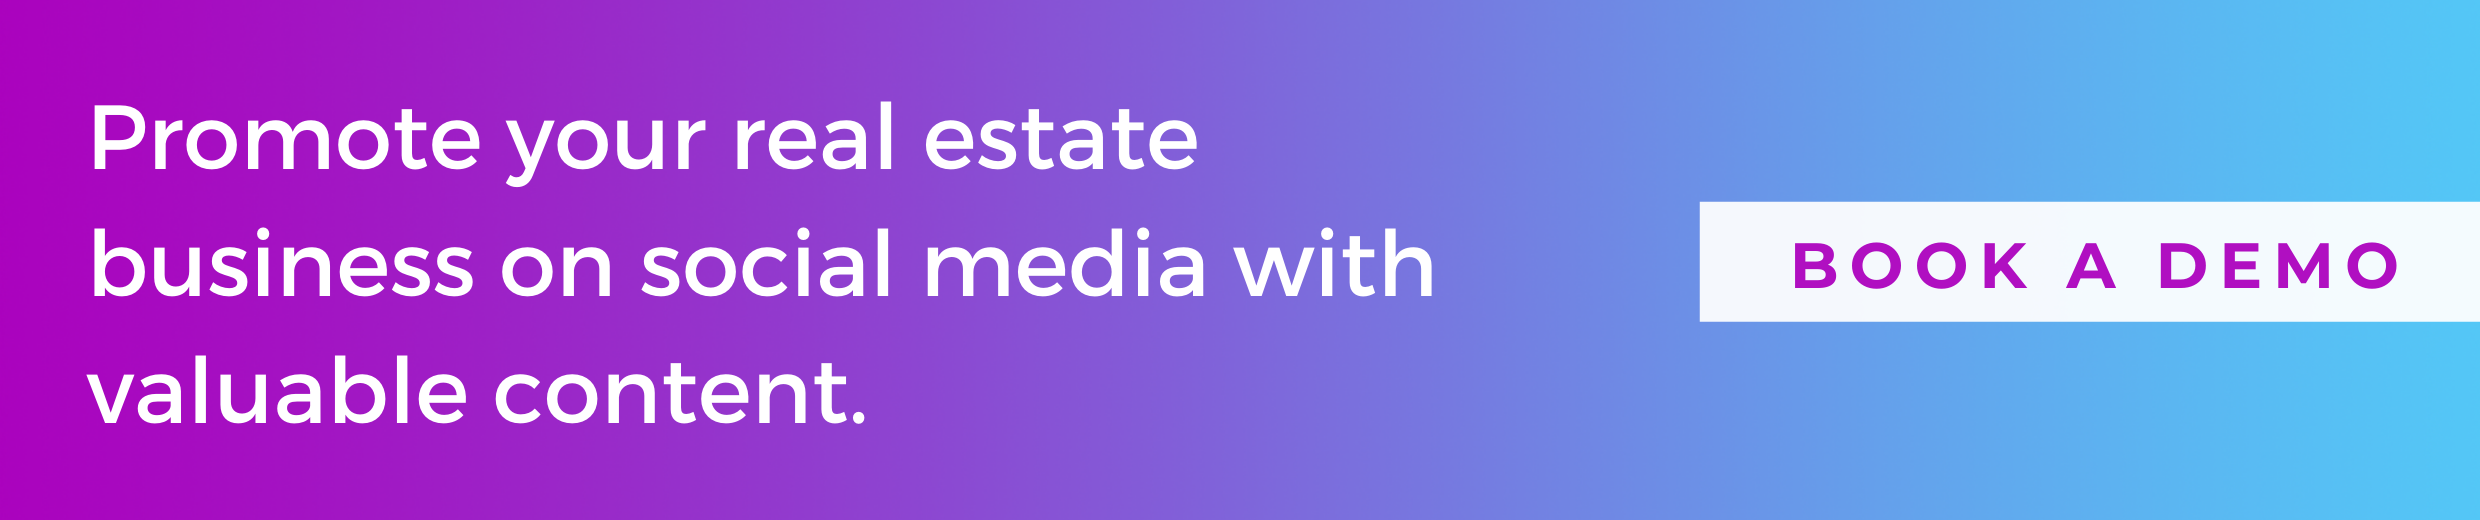 button to get started for free and promote your real estate business on social media with valuable content